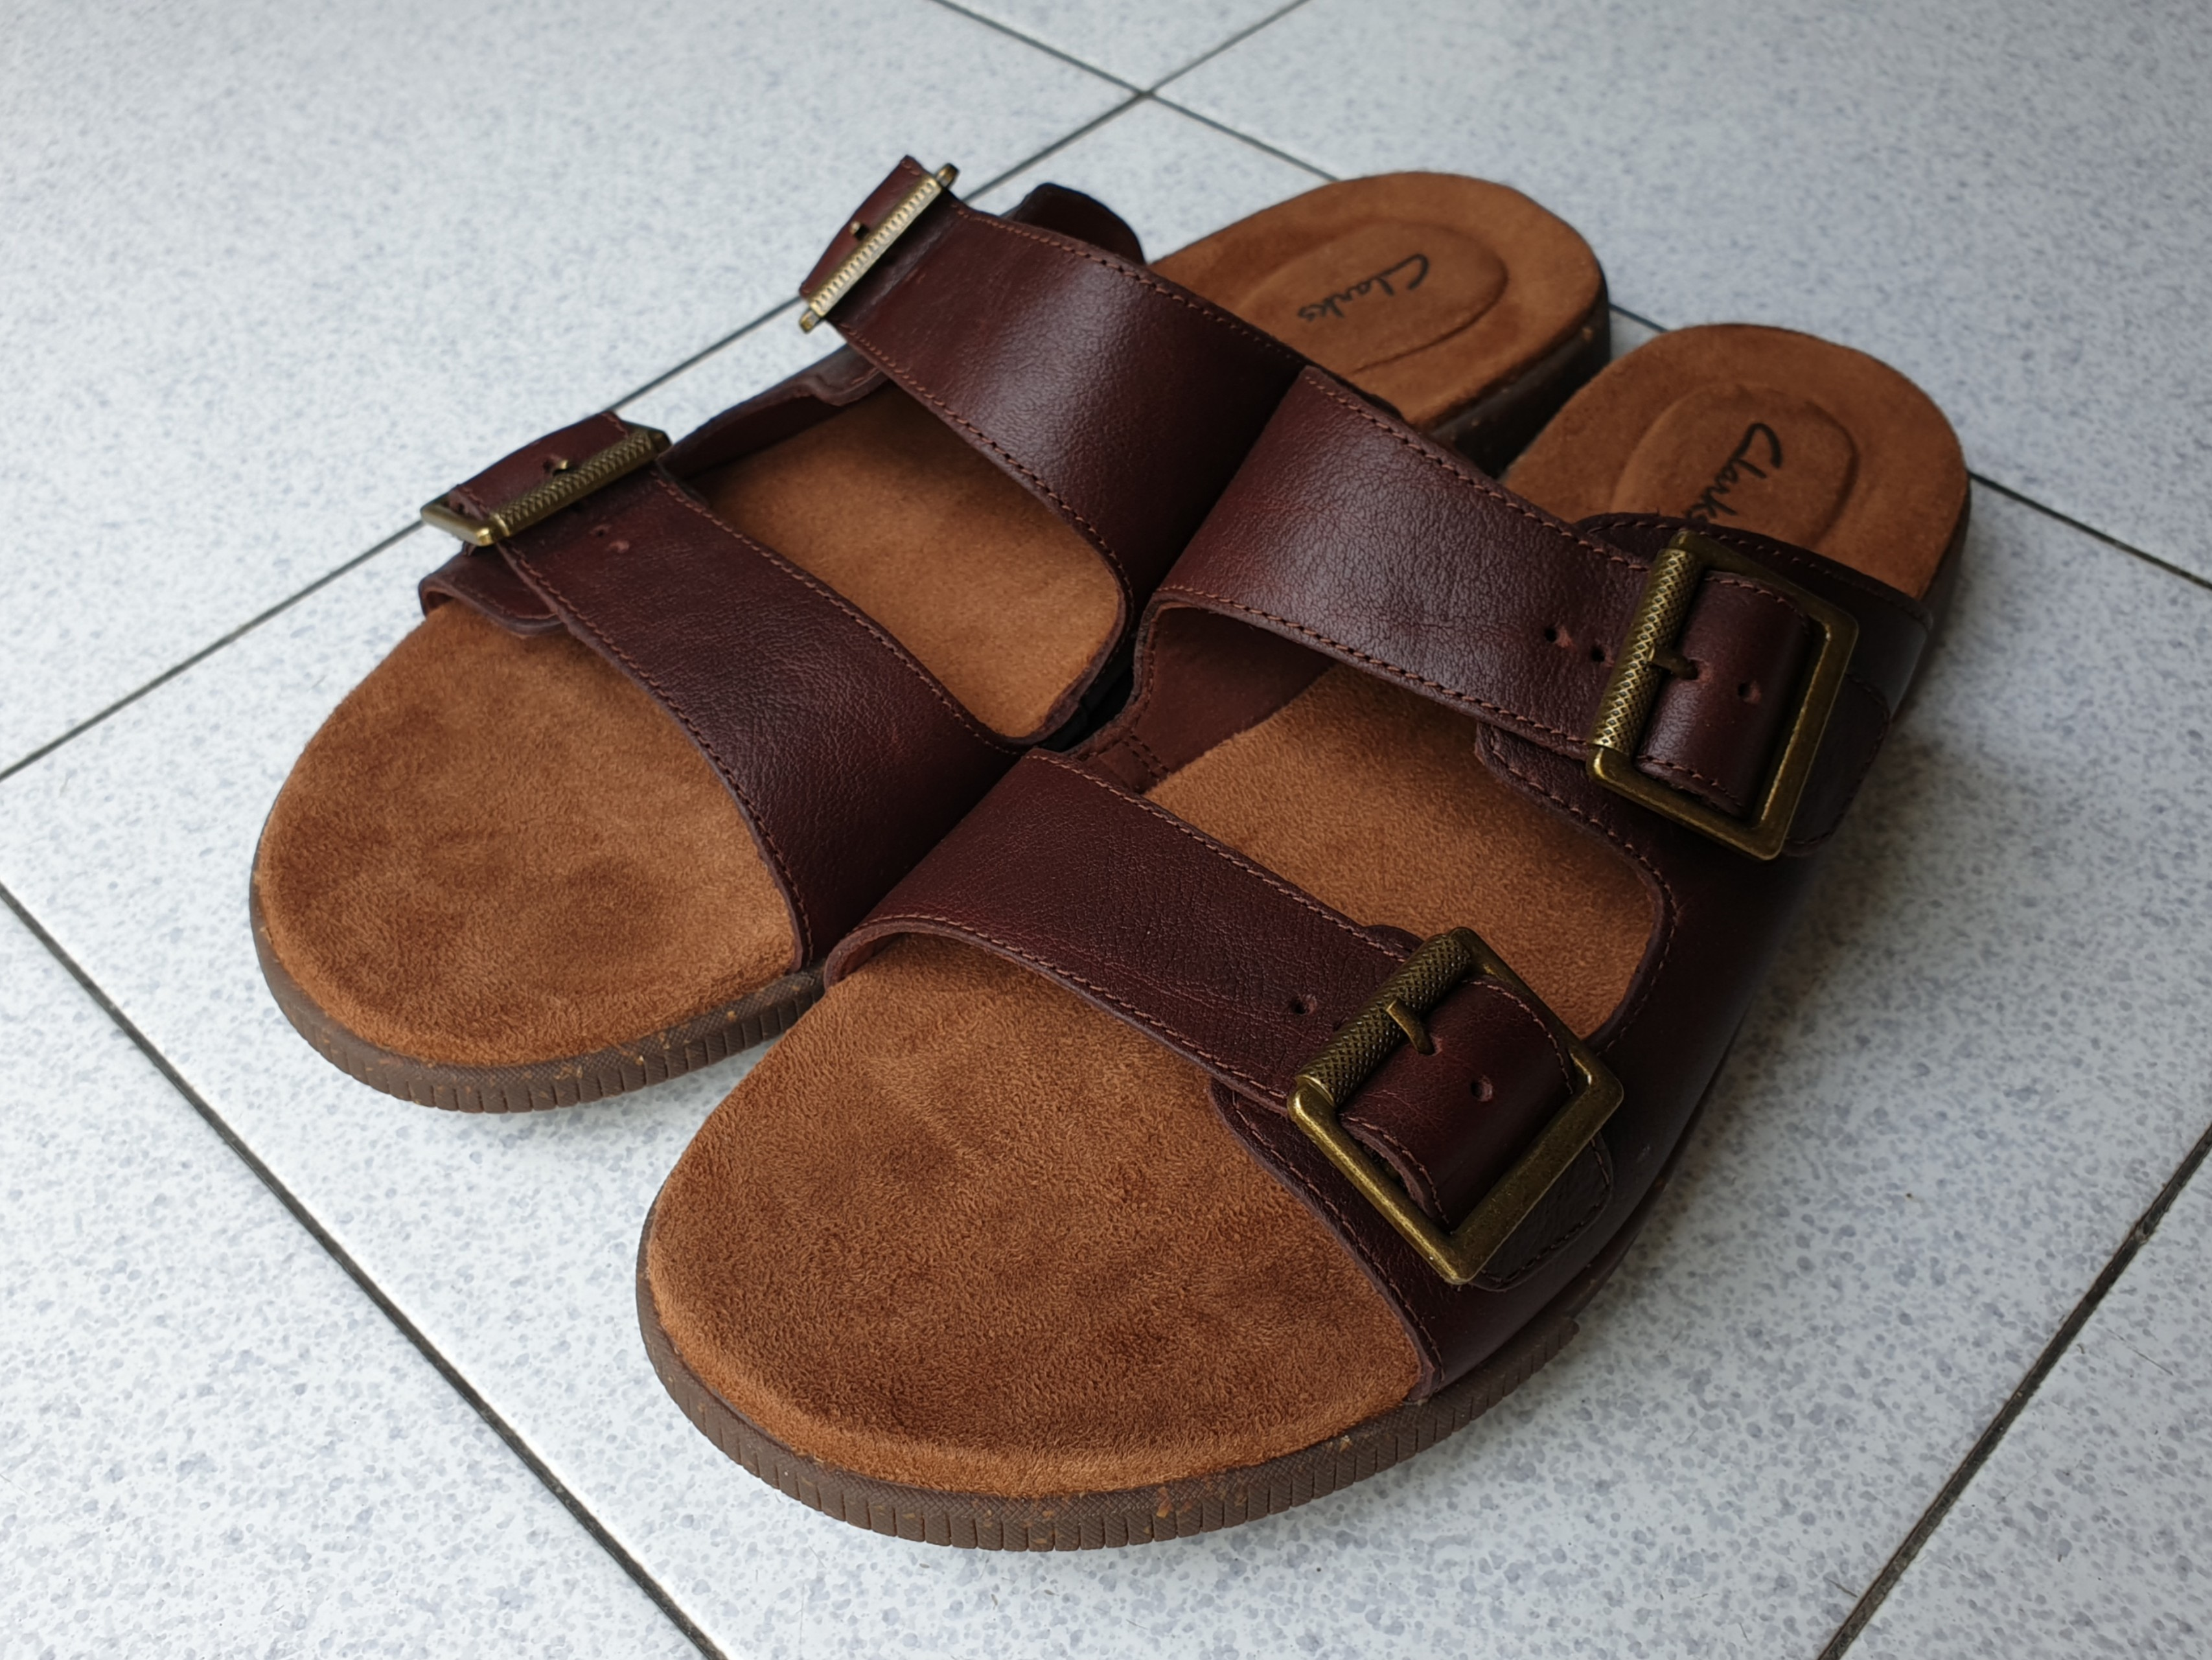 Brand New Authentic Clarks Sandals